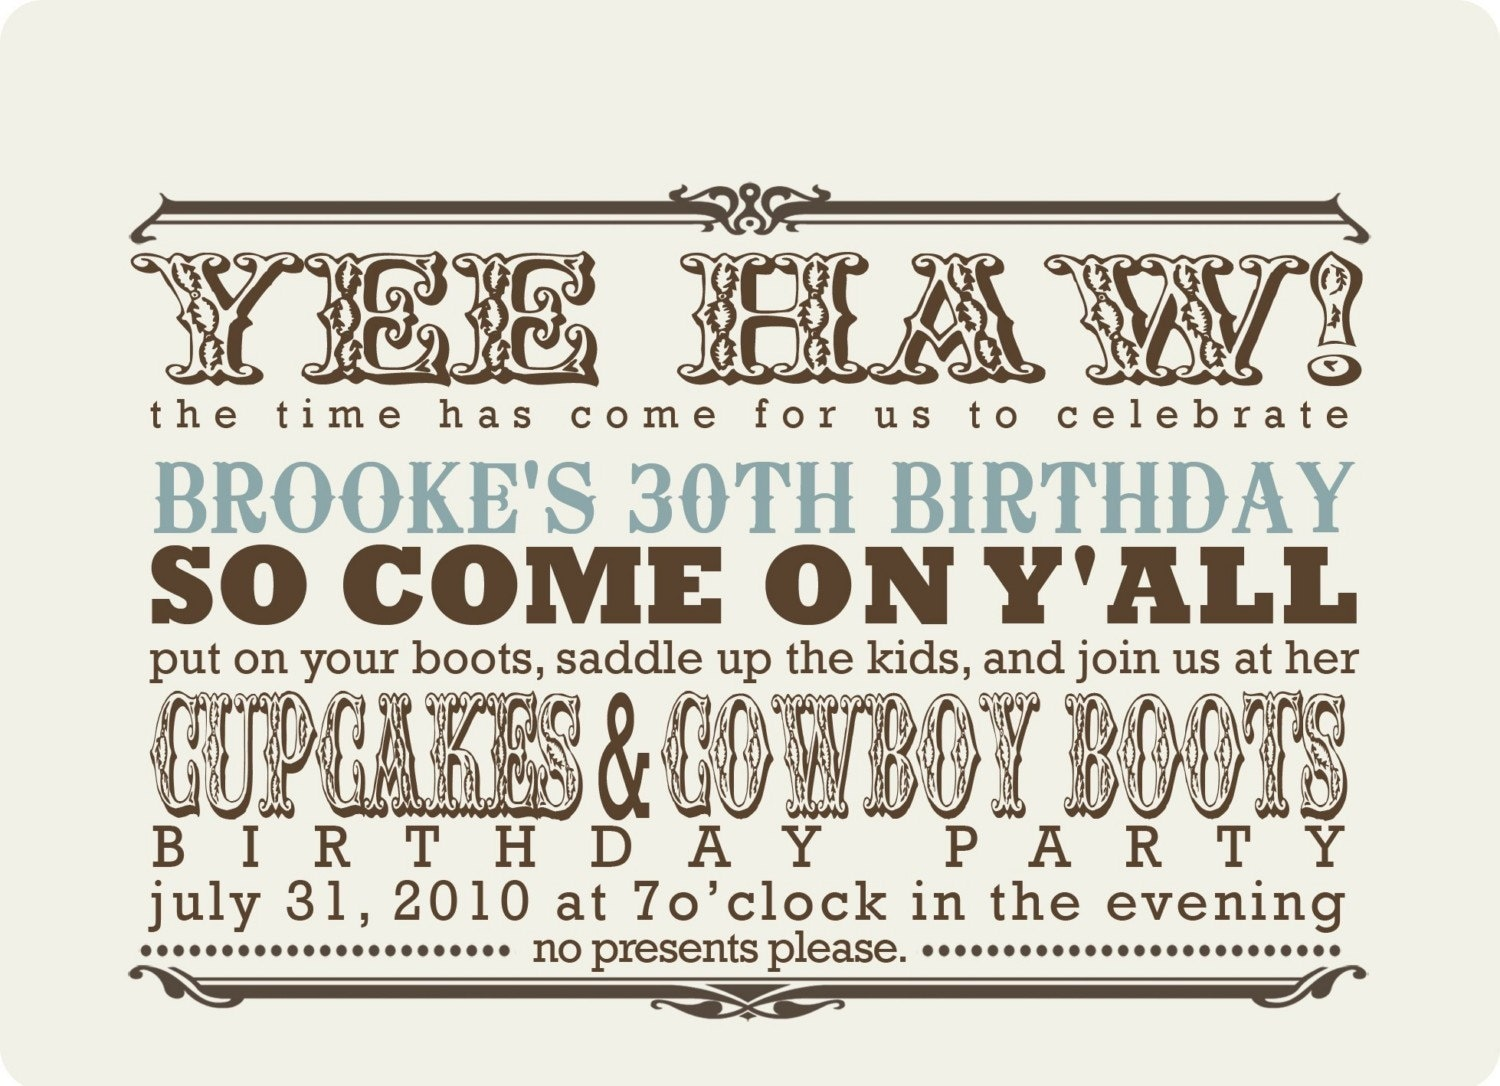 Boots Wedding Invitations is adorable invitation sample